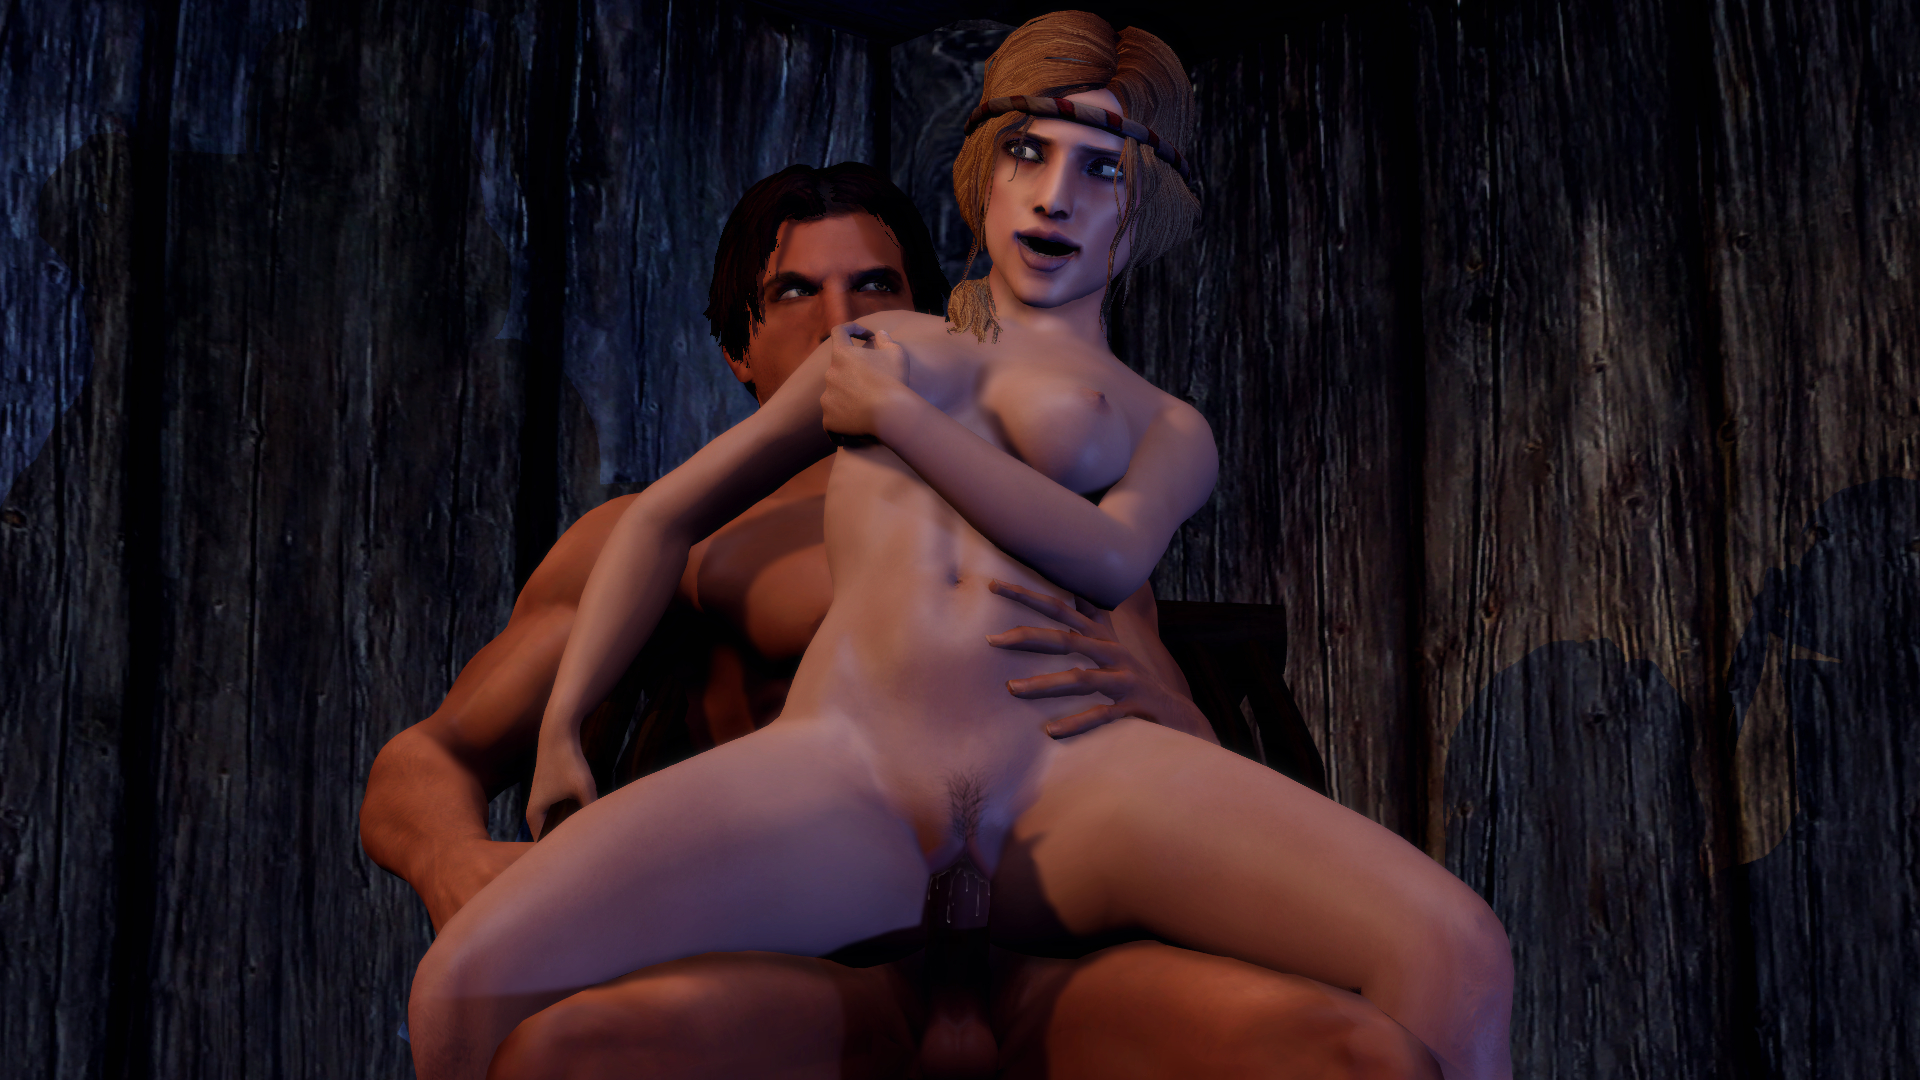 Assassins creed ii nude mod xxx animated pussies